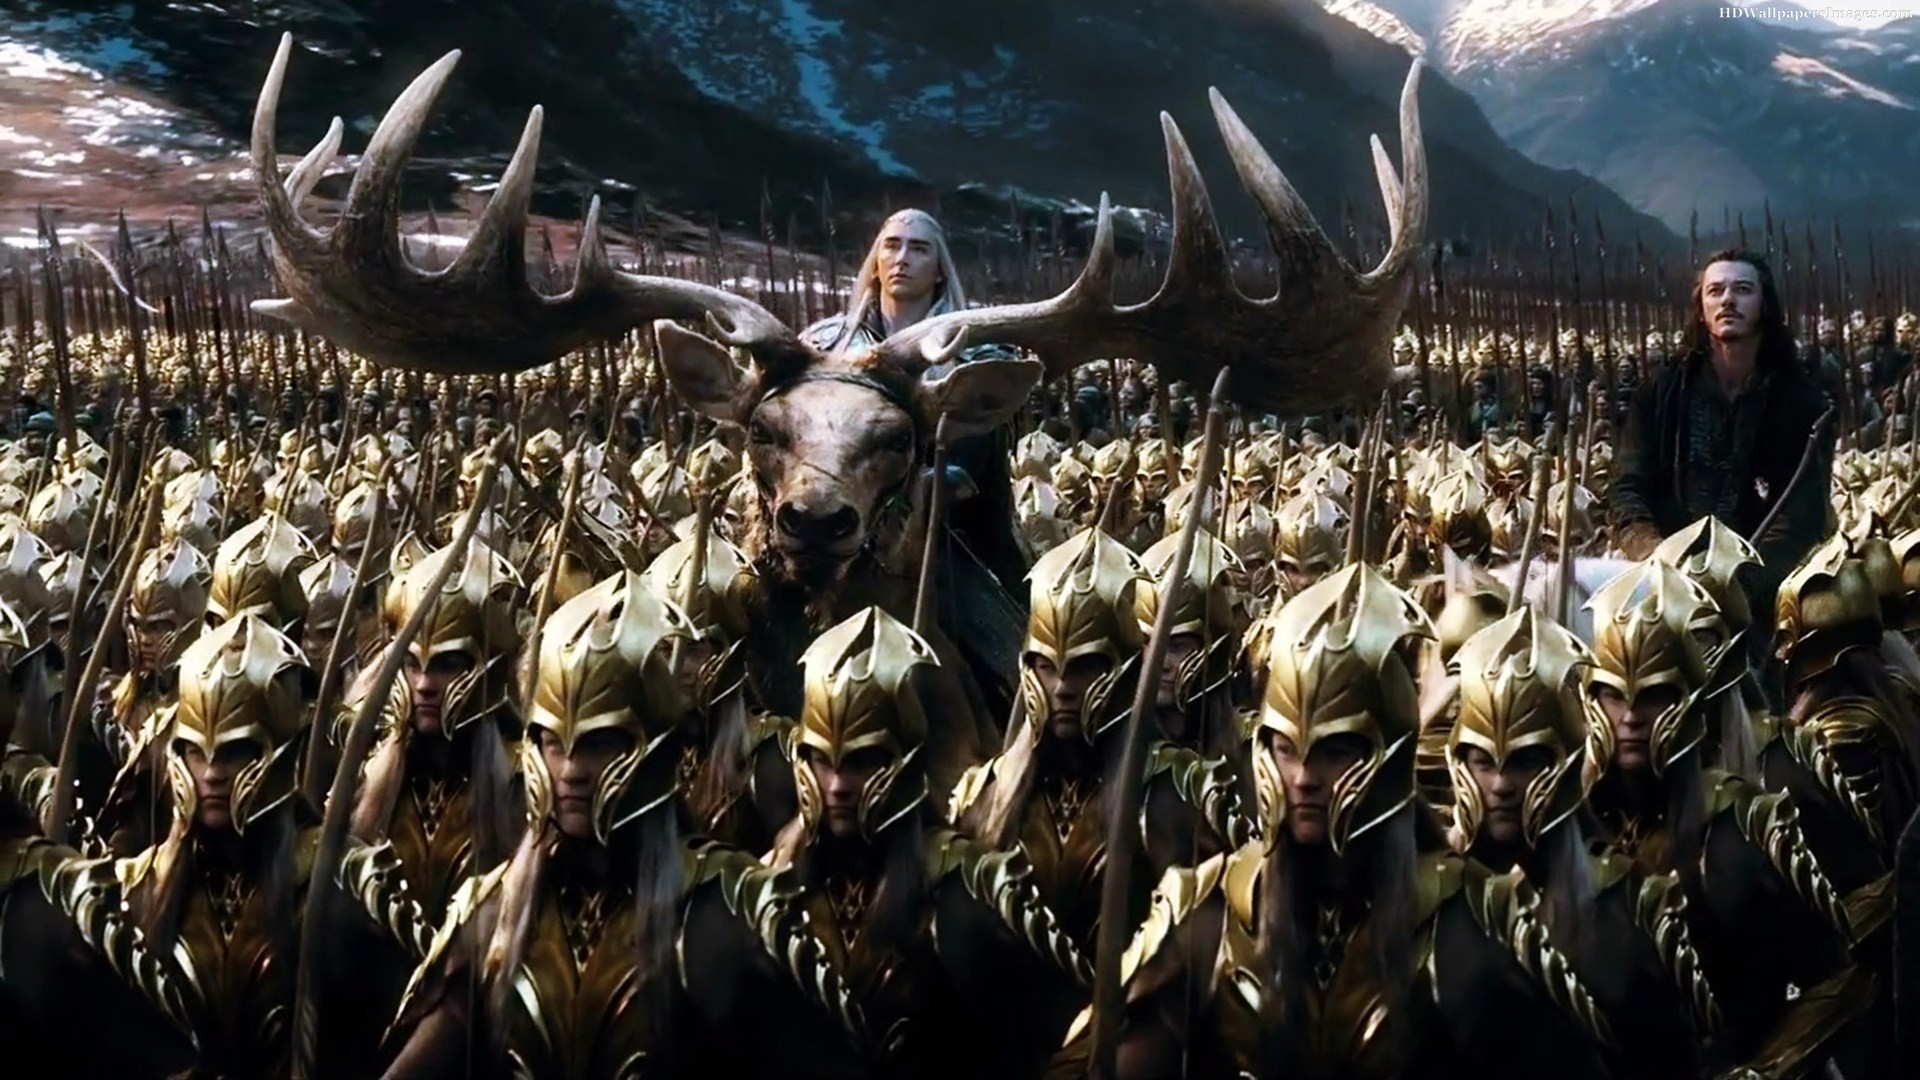 Thranduil (Lee Pace) and Bard (Luke Evans) ride in to battle at the head of an elven army in The Hobbit: The Battle of the Five Armies (2014)